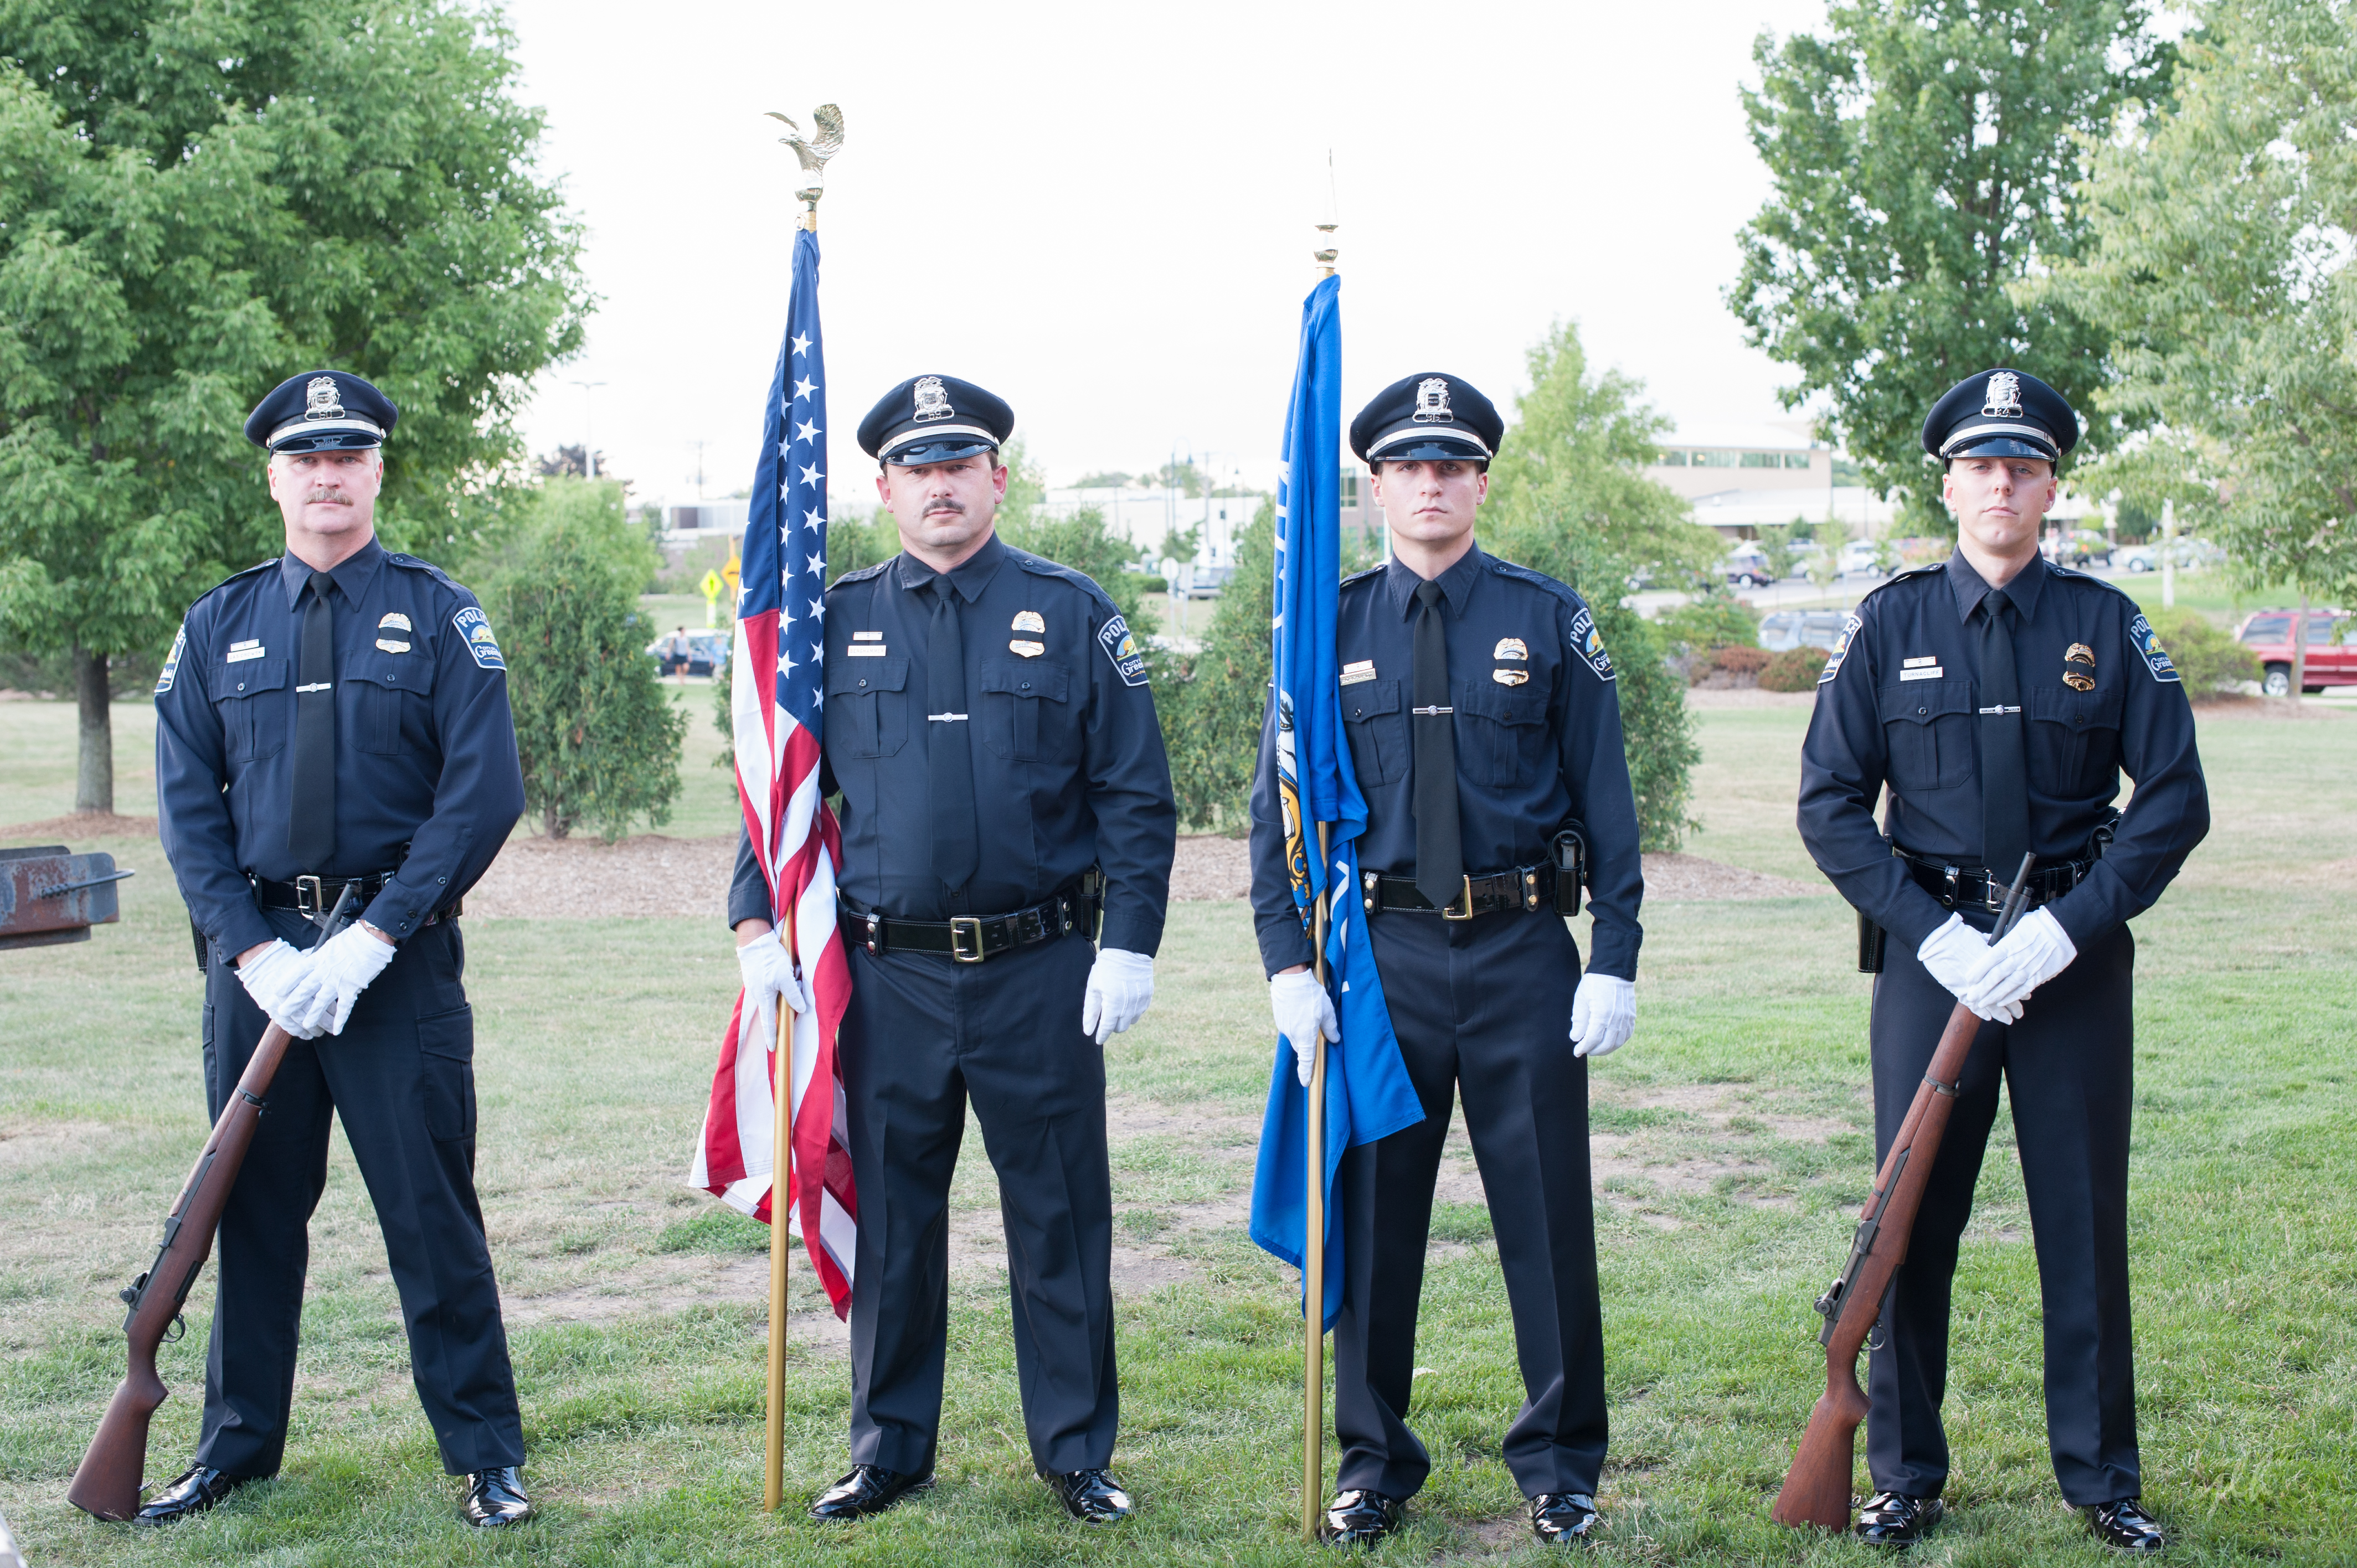 4 police officers presenting the American flag and another flag at a ceremony